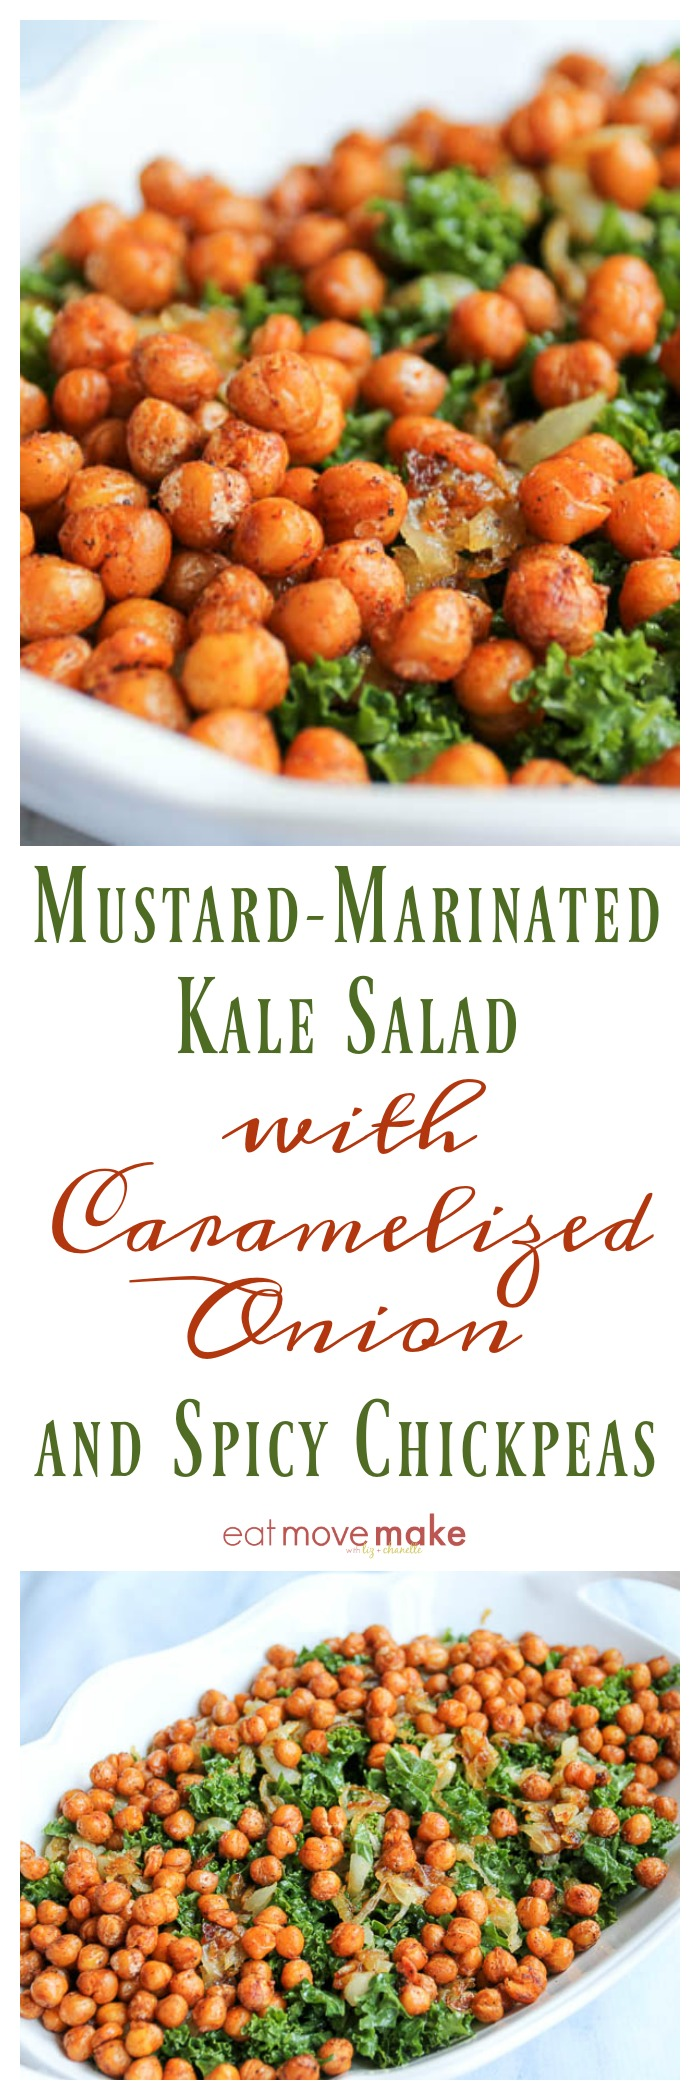 Mustard-Marinated Kale Salad with Caramelized Onion and Spicy Chickpeas photo collage